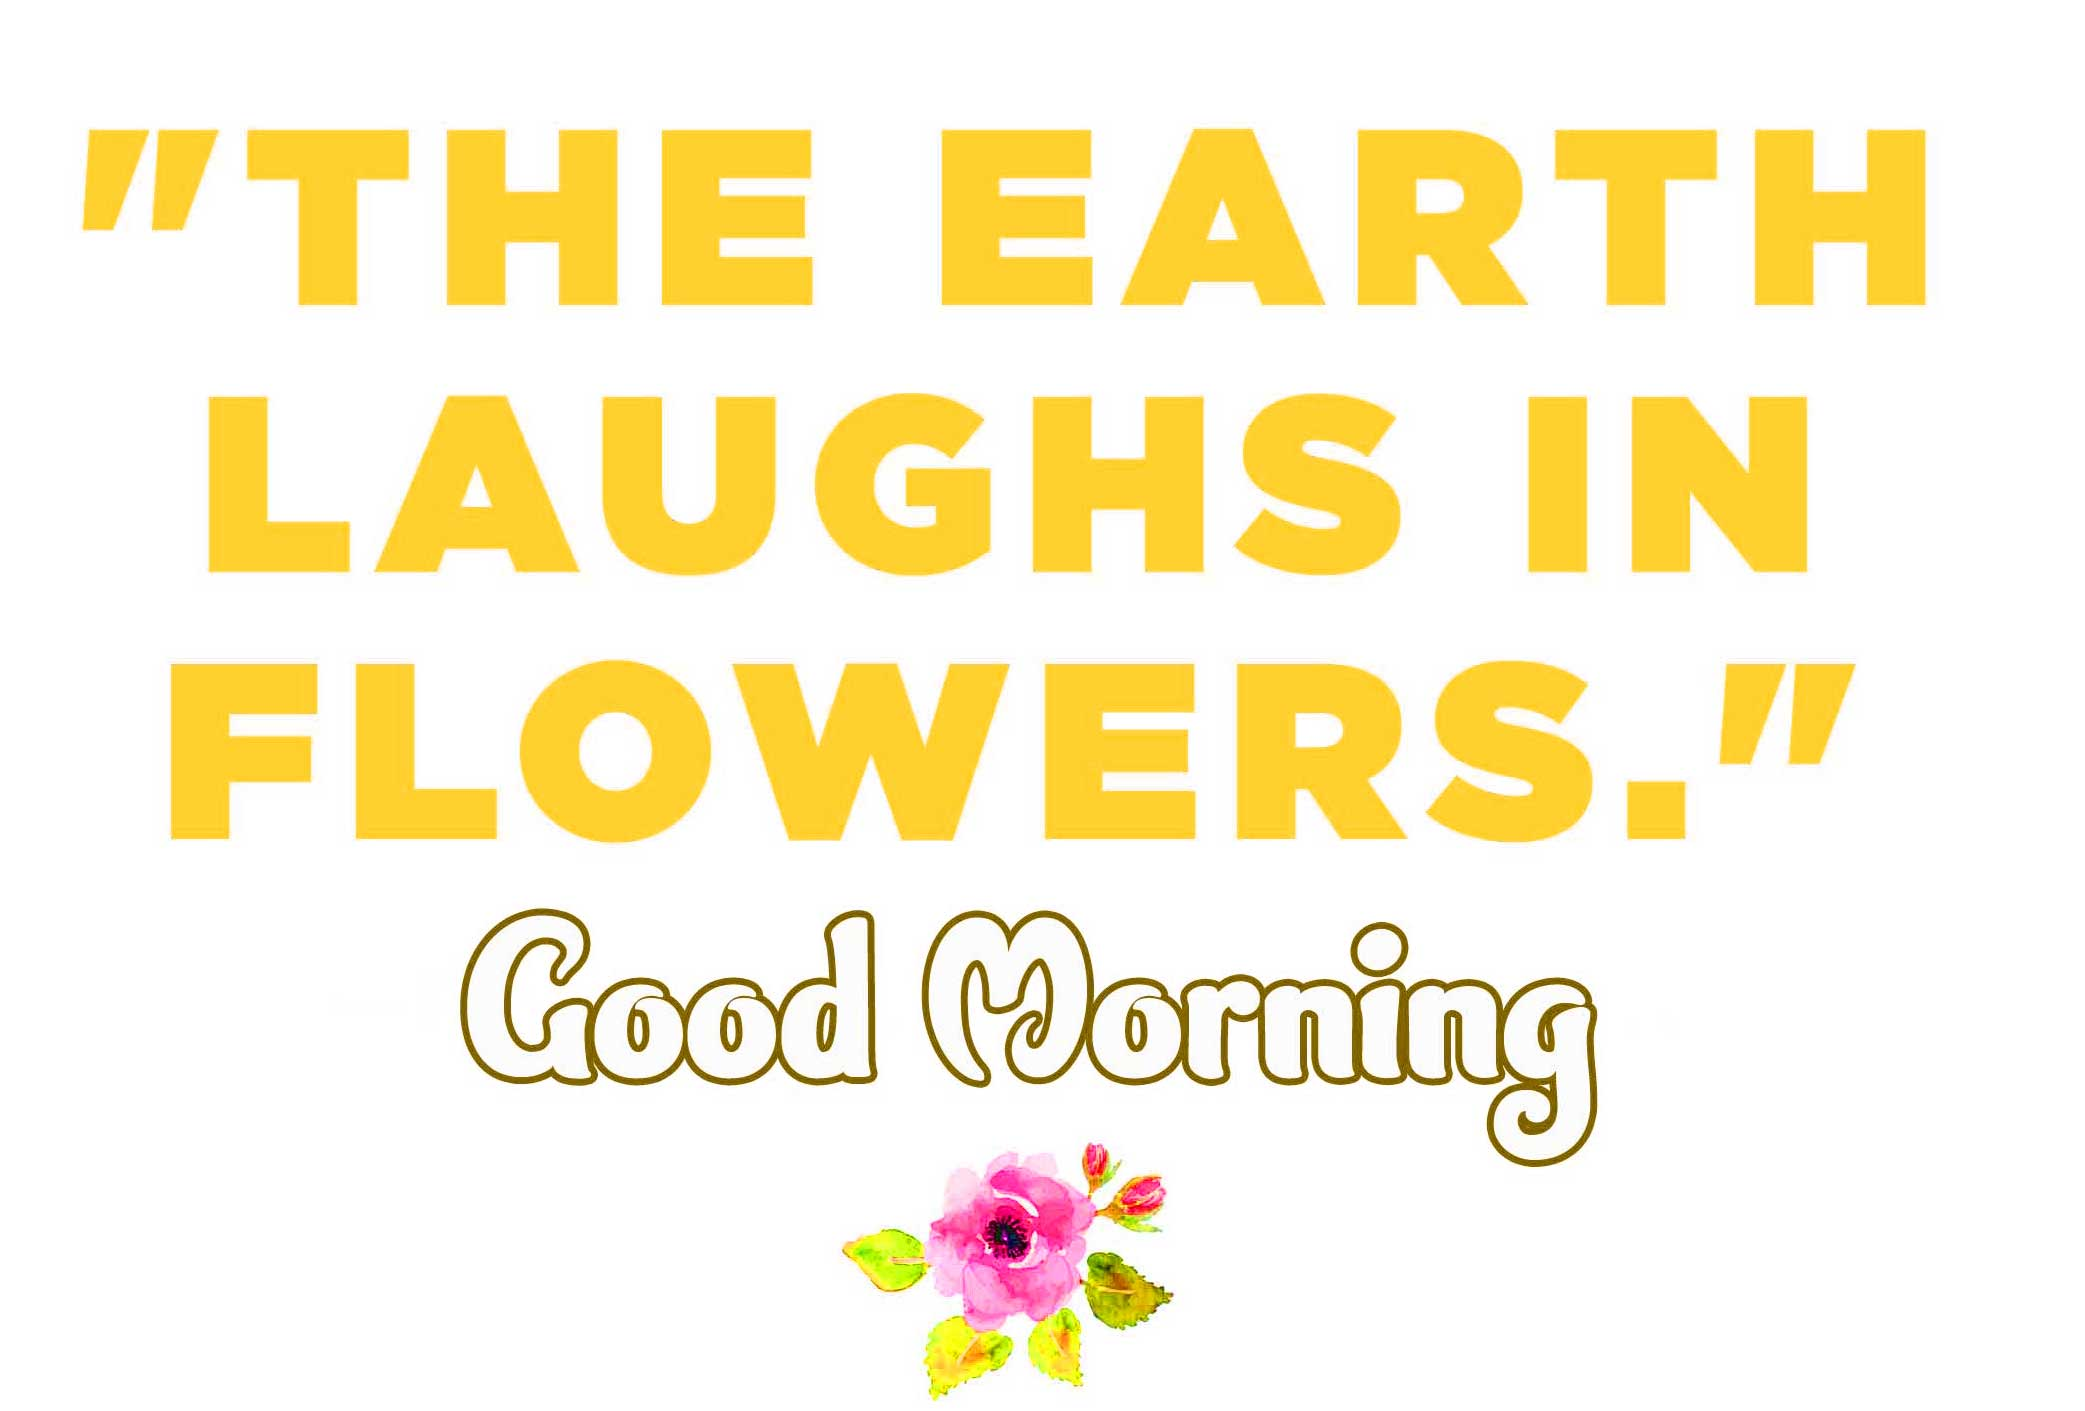 English Thought Good Morning Images Wallpaper Pics Download